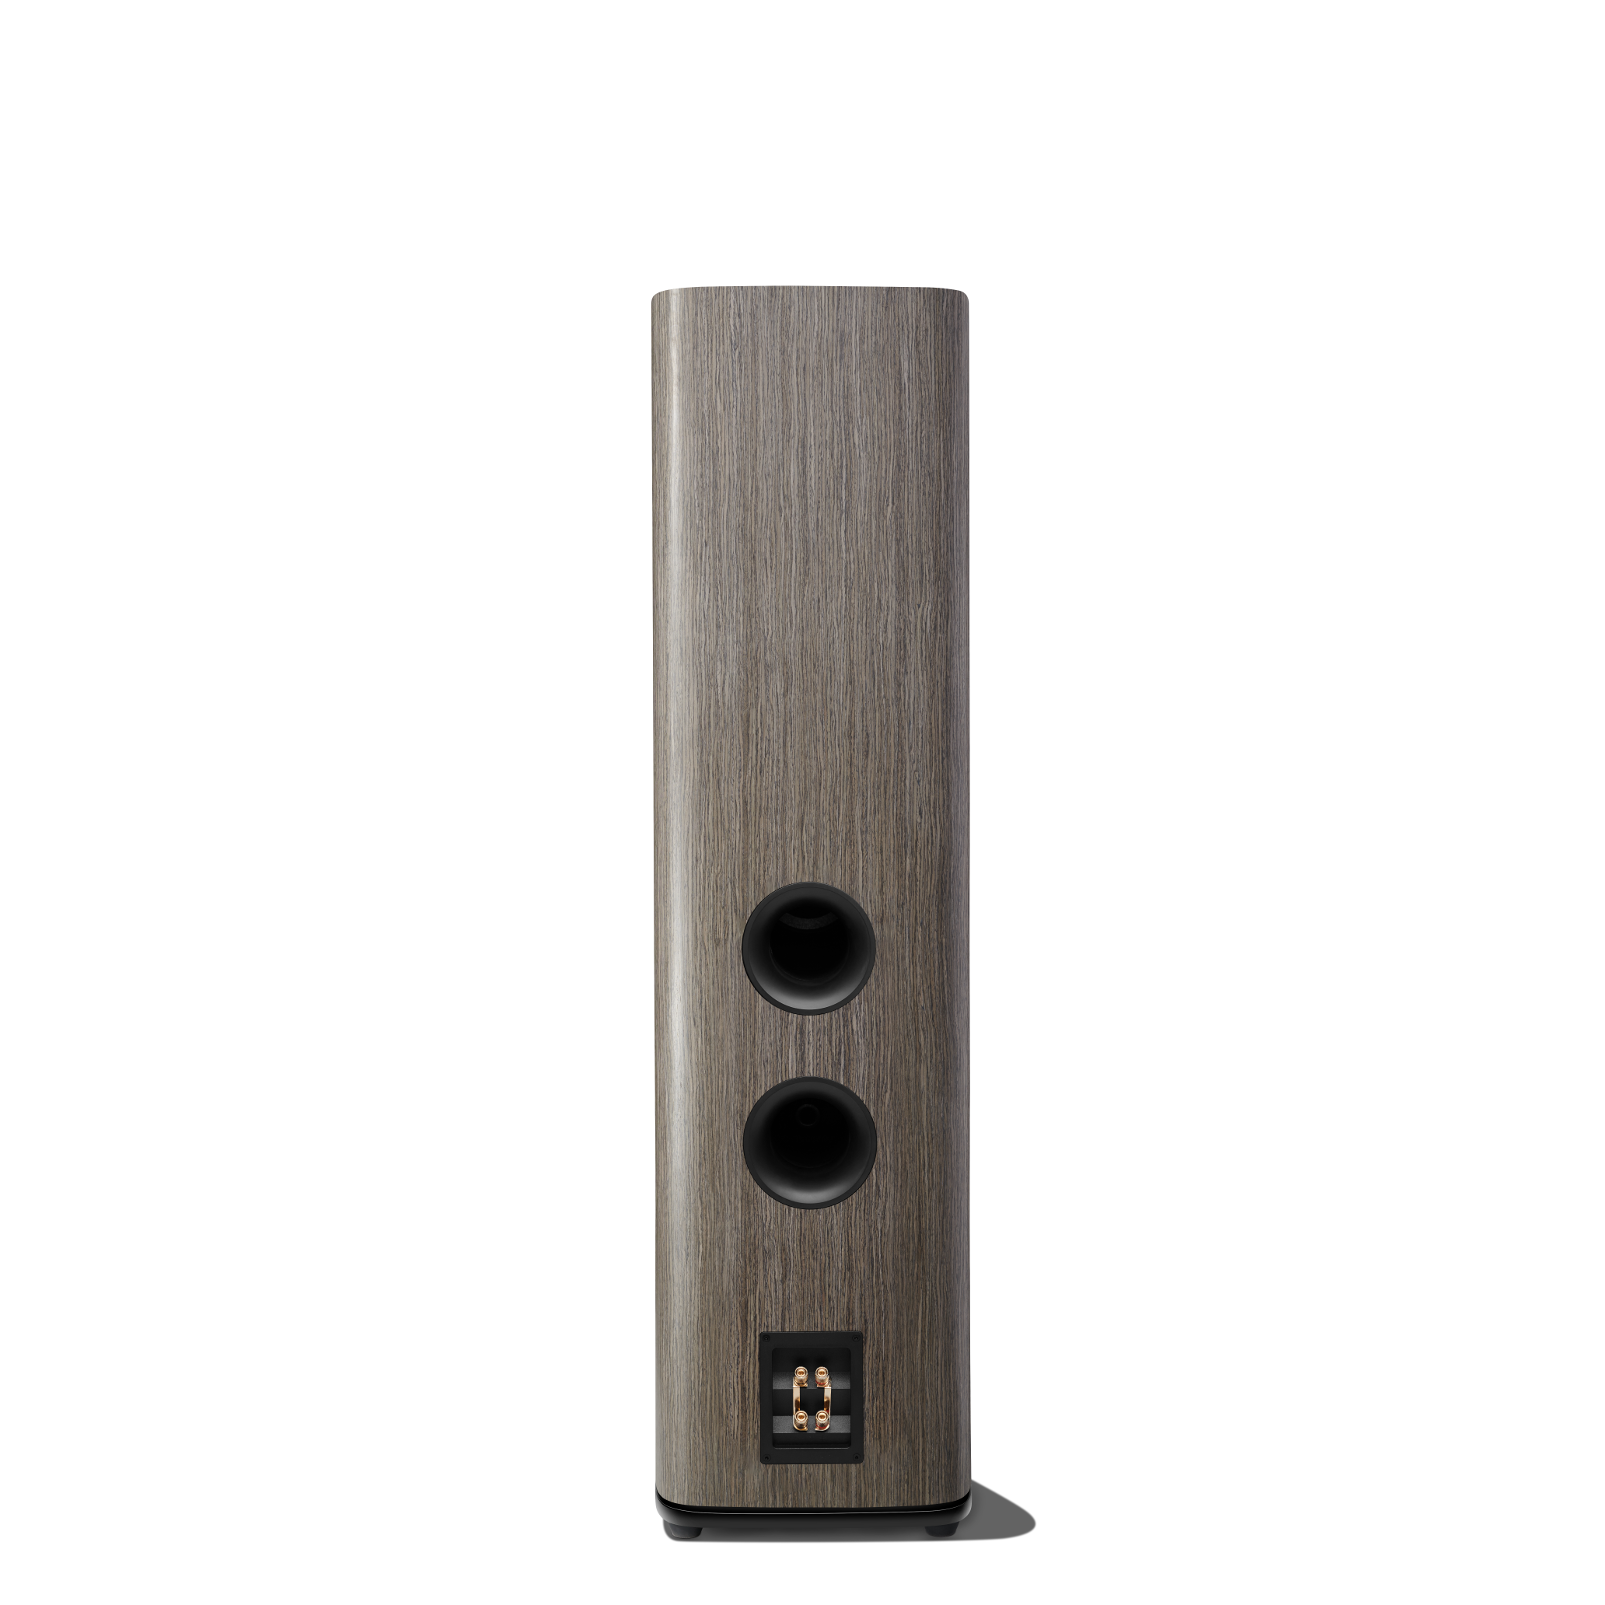 HDI-3800 - Grey Oak - 2 ½-way Triple 8-inch (200mm) Floorstanding Loudspeaker - Back